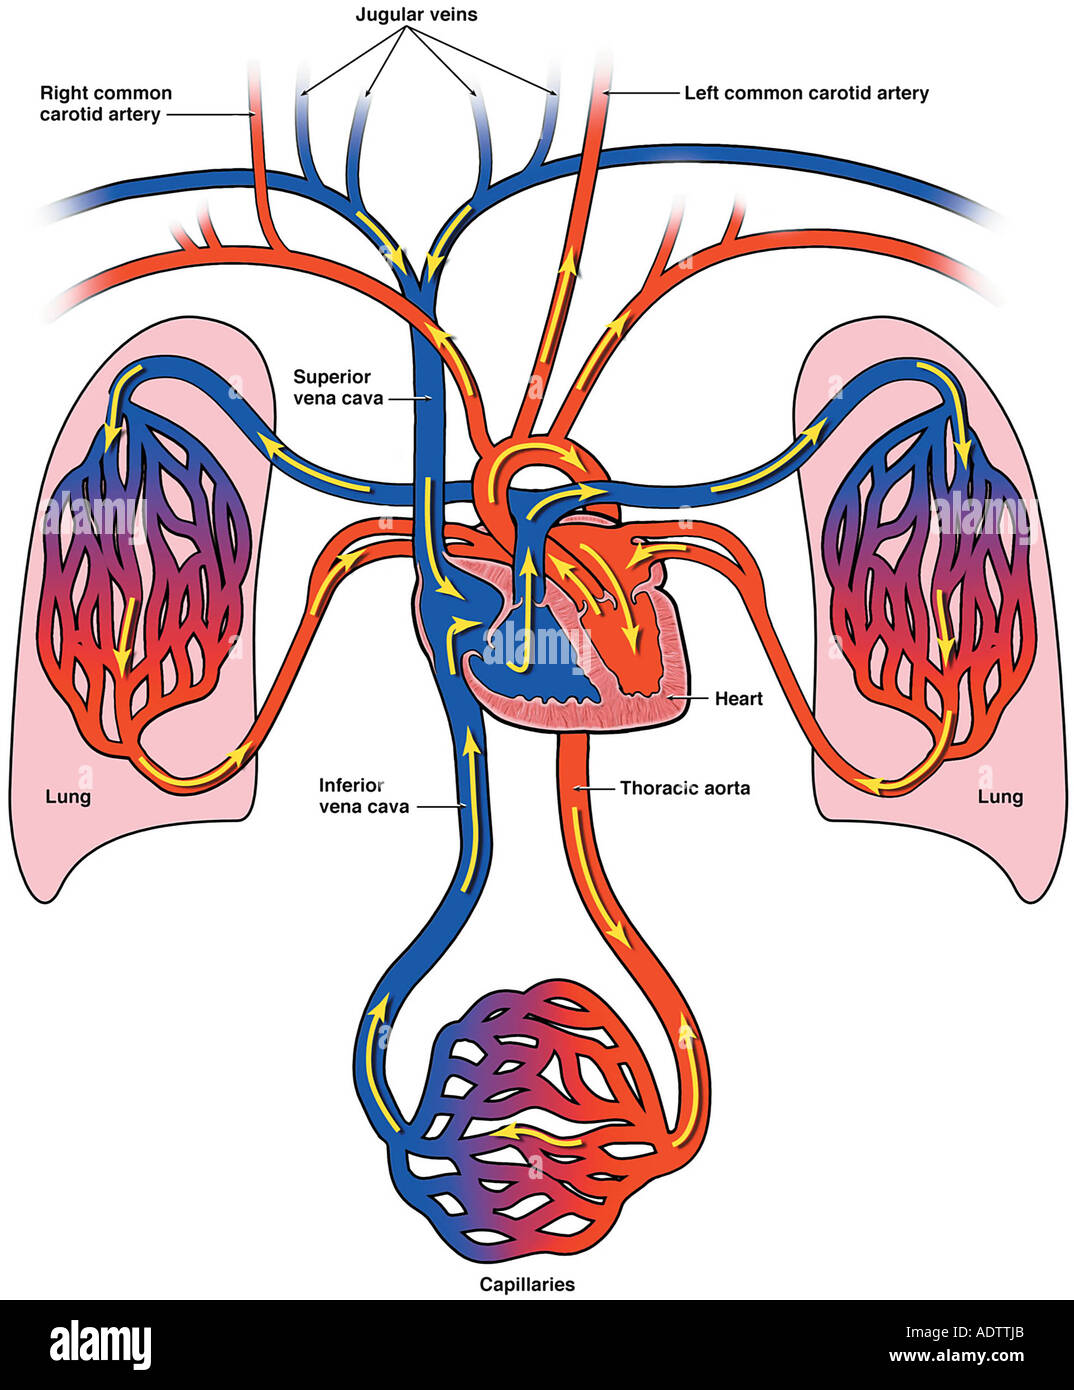 Diagram of blood flow in heart lungs and body electrical work diagram of bloodflow to the heart lungs and body stock photo rh alamy com heart diagram blood flow circulation human heart blood flow diagram ccuart Choice Image